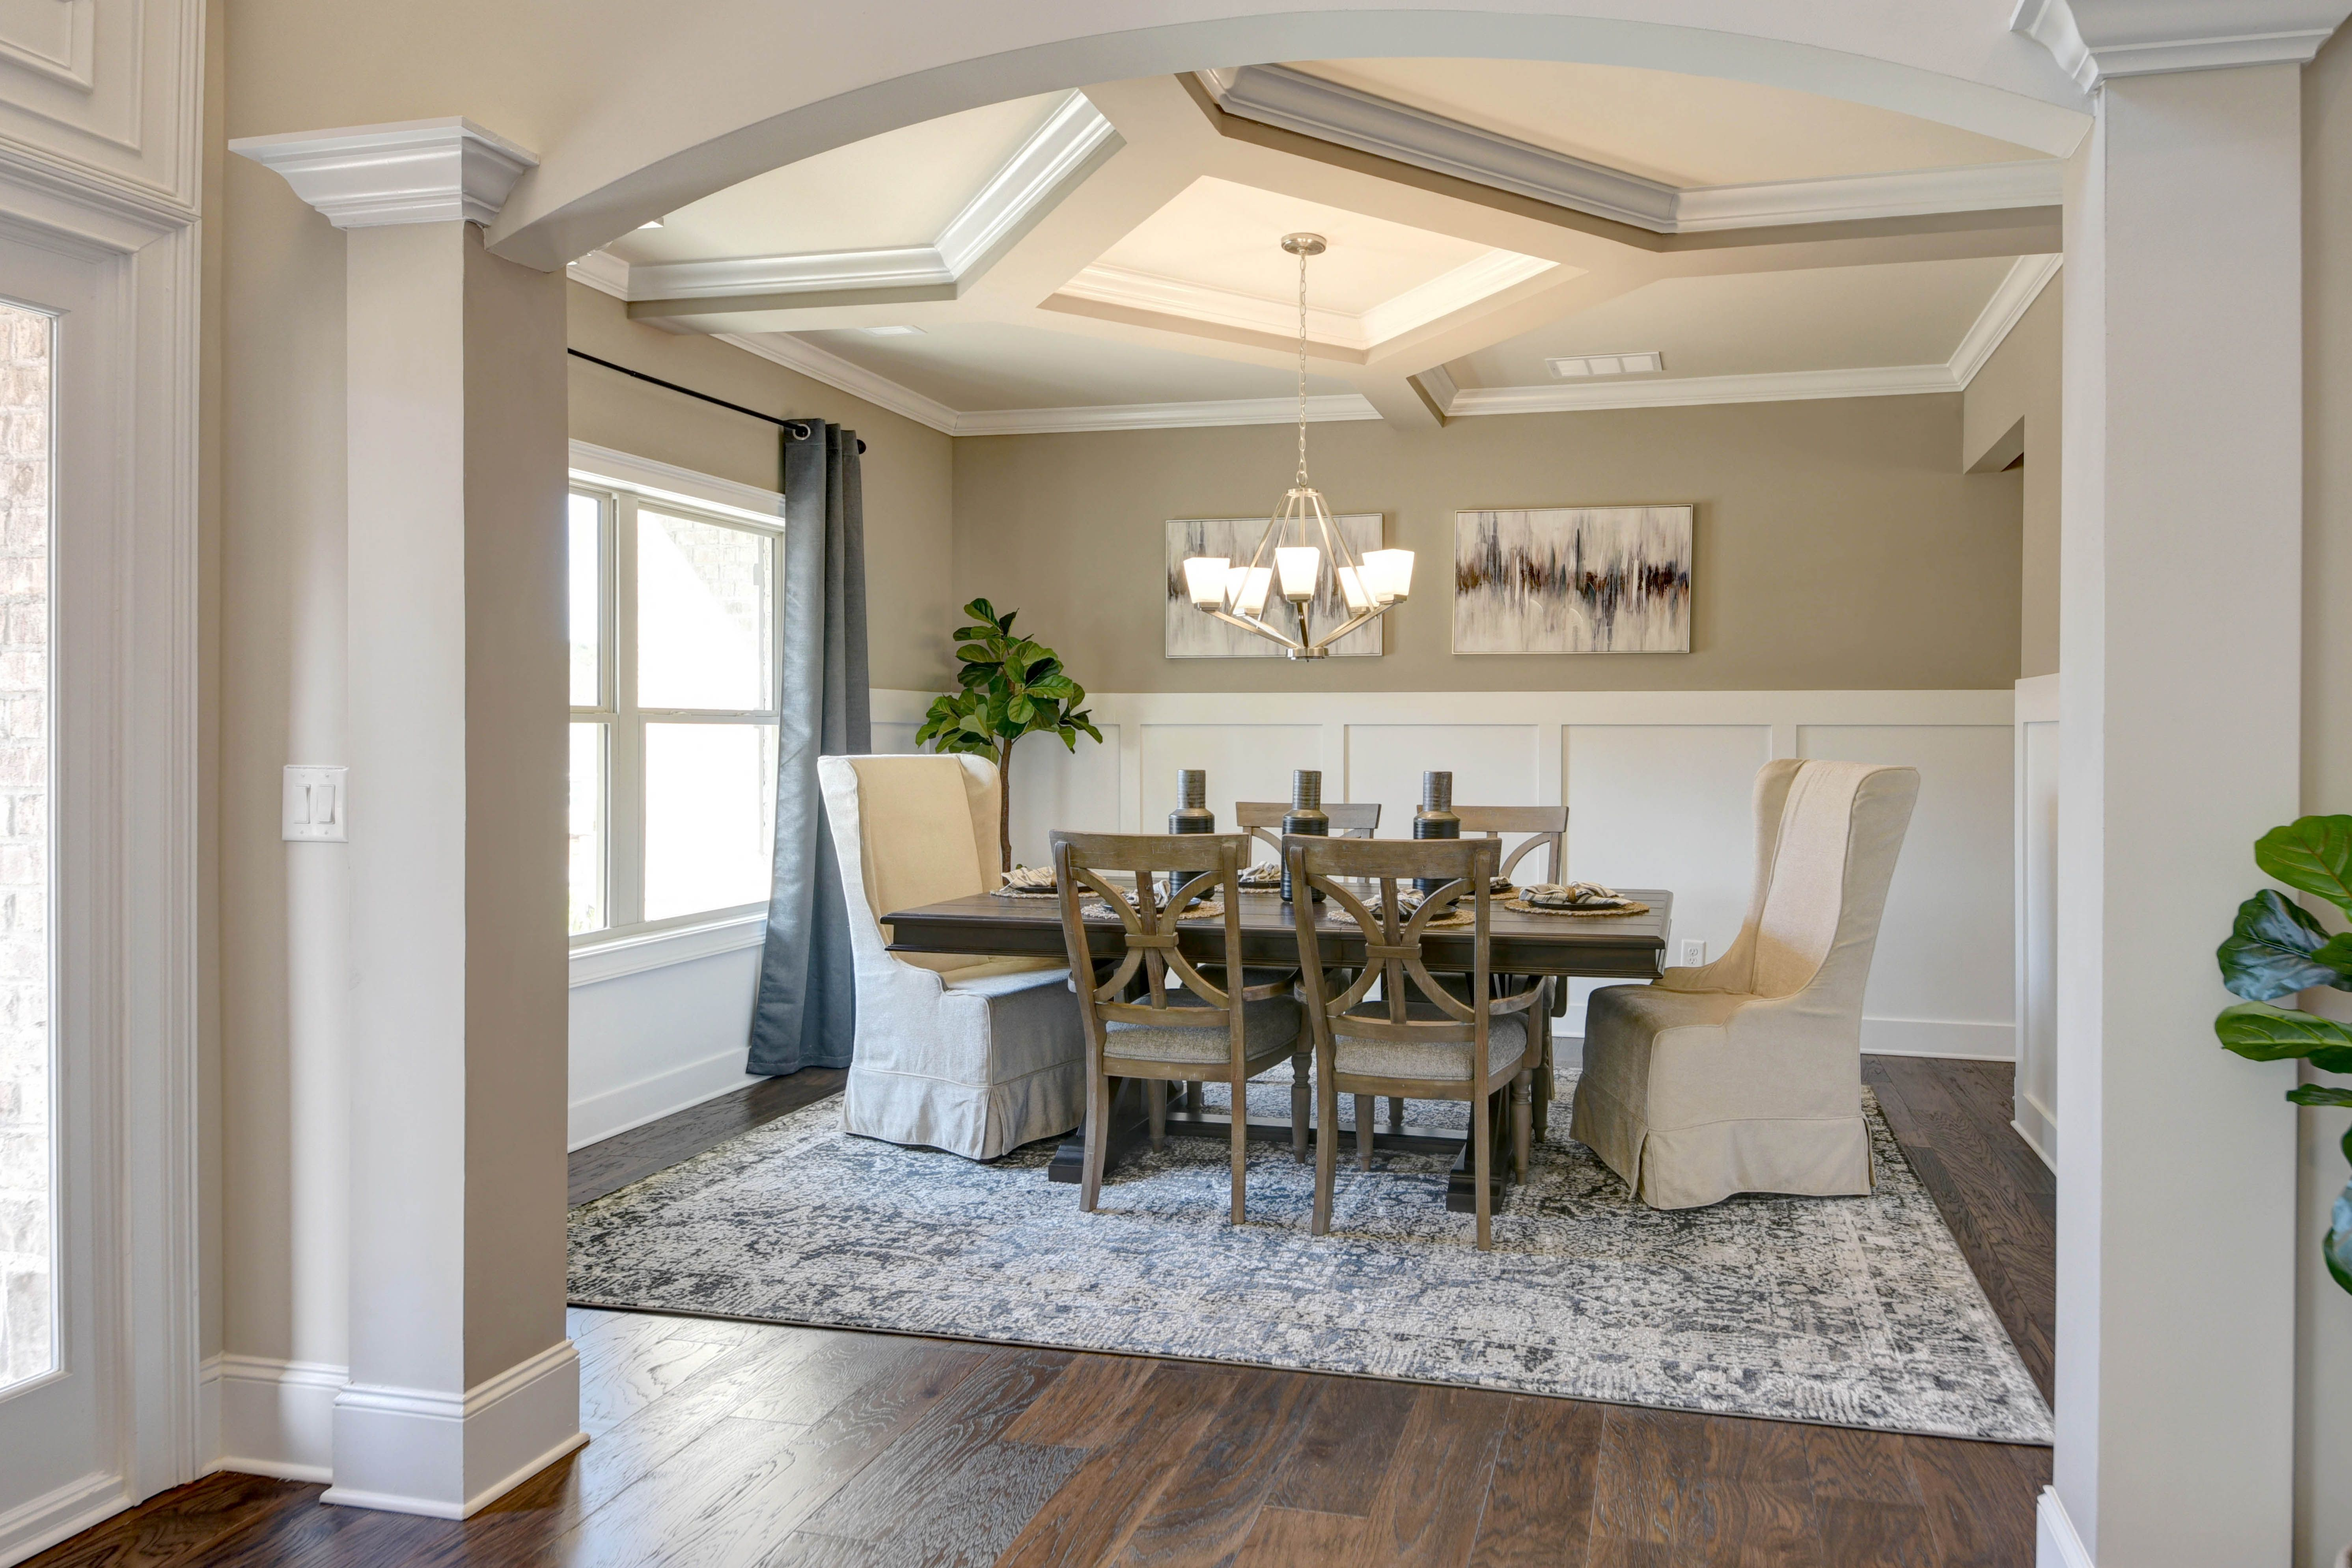 Living Area featured in The Claire By Almont Homes in Atlanta, GA